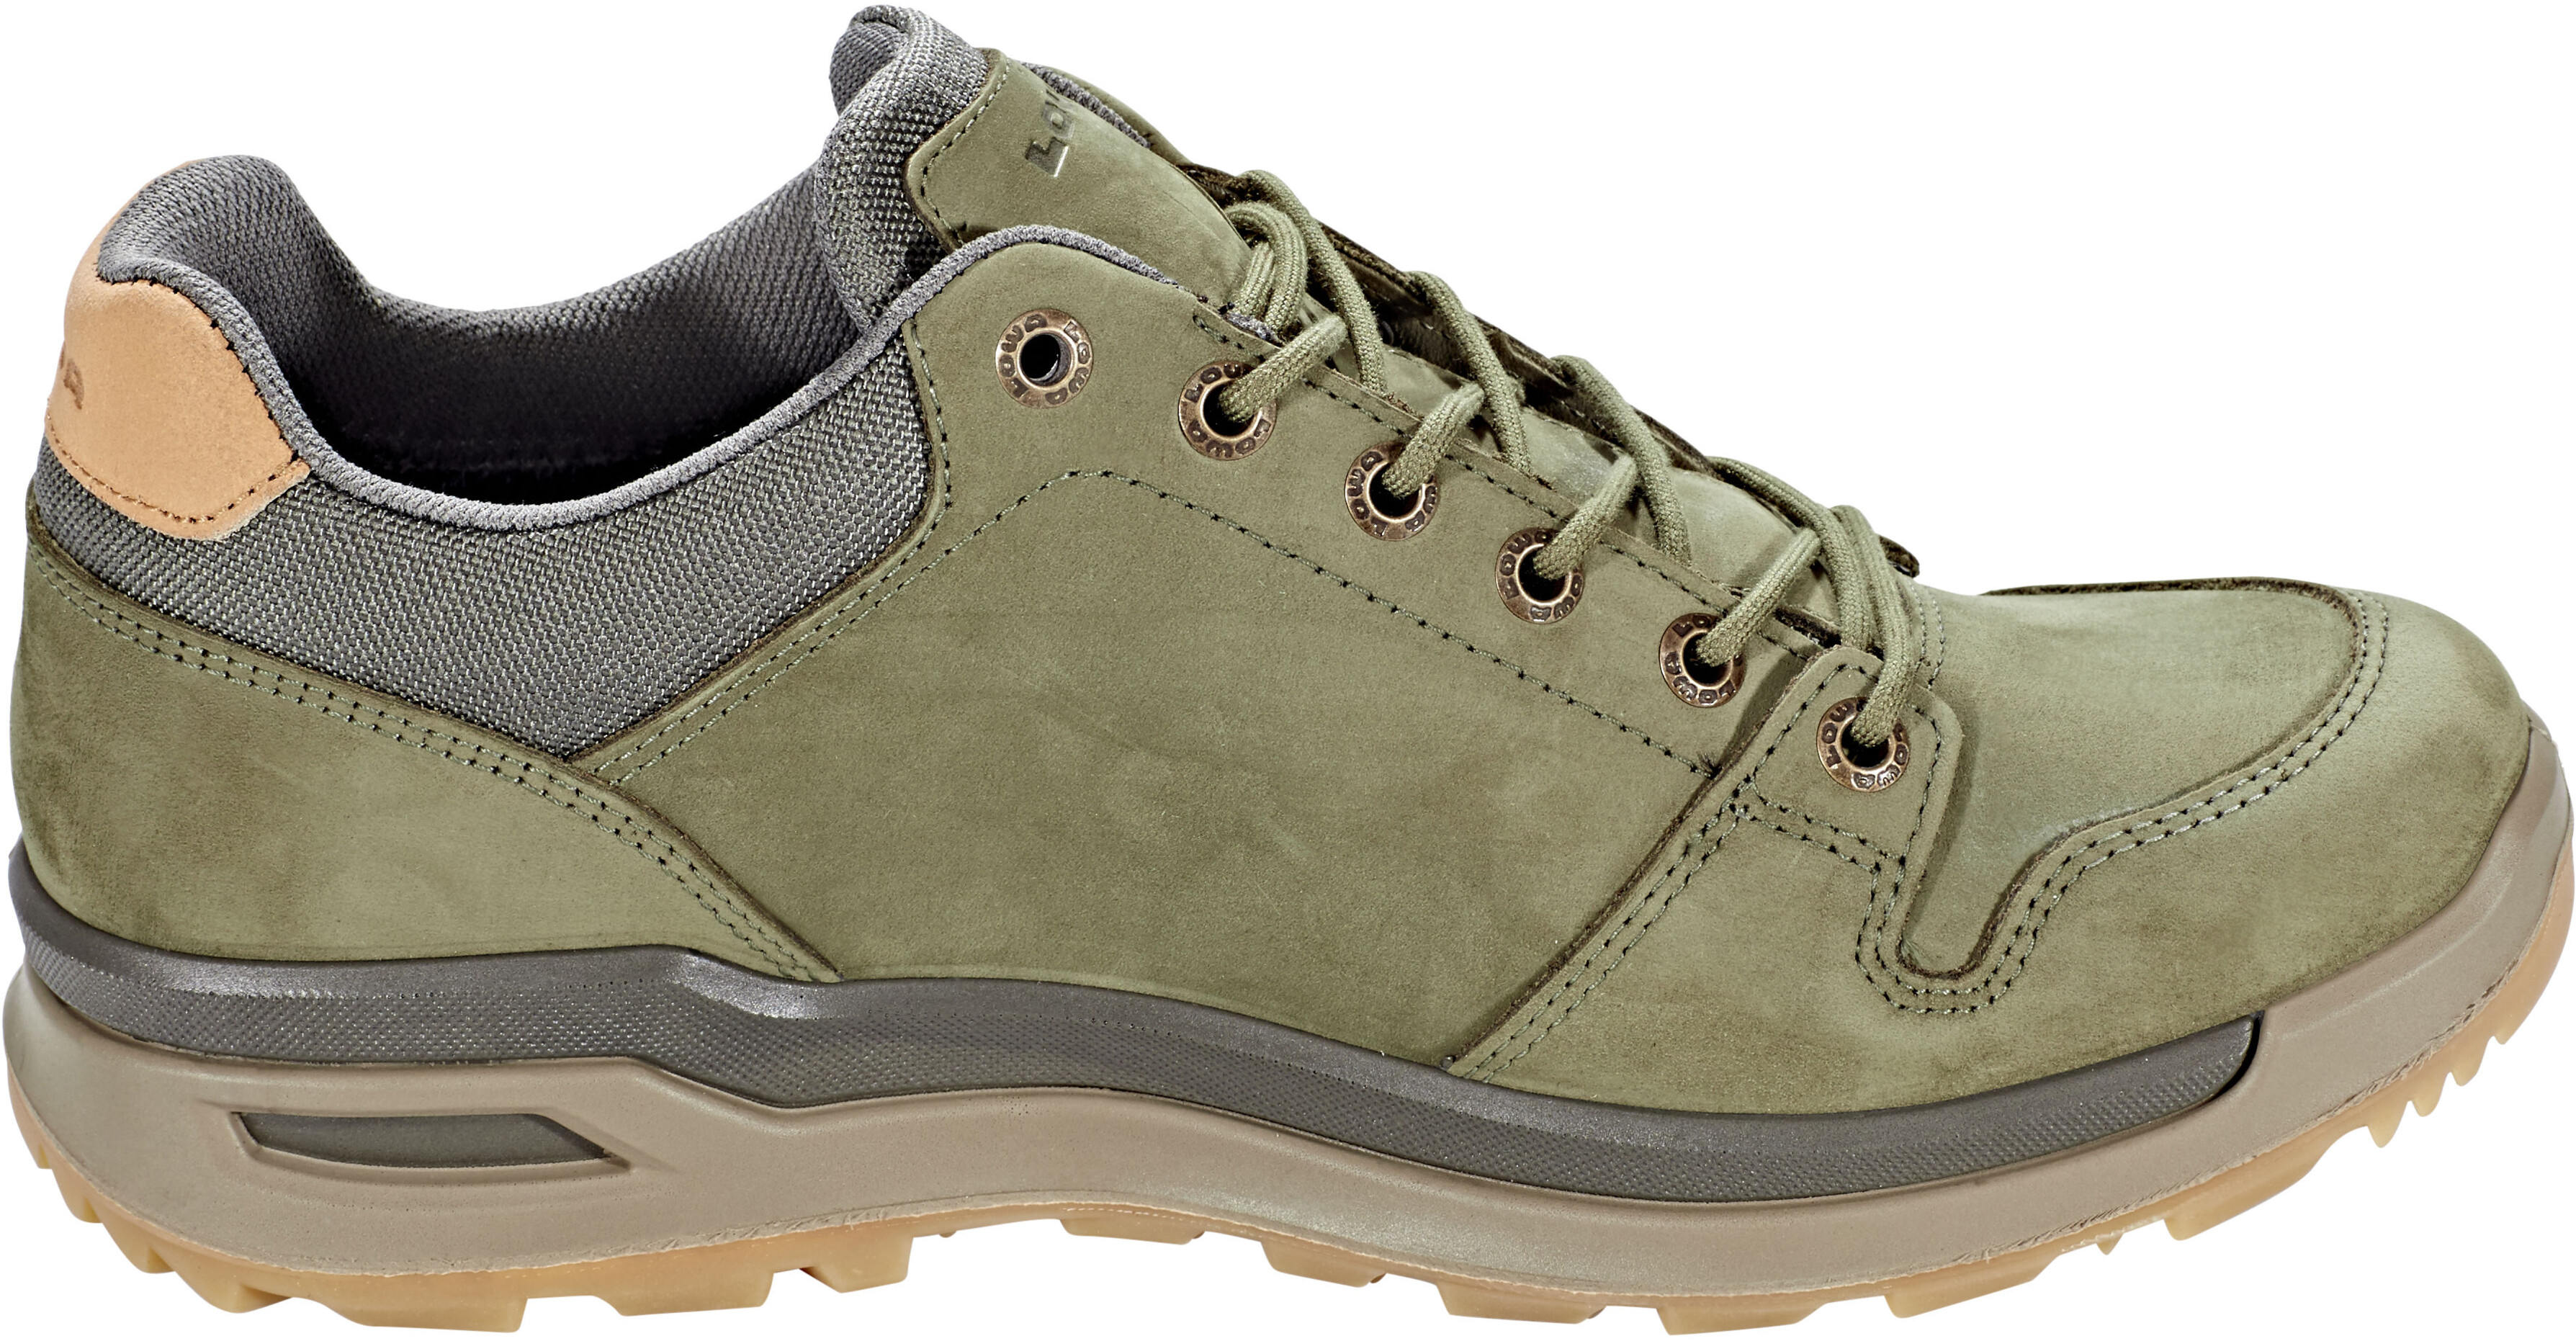 794e4f4dcf6 Lowa Locarno GTX - Chaussures Homme - olive sur CAMPZ !